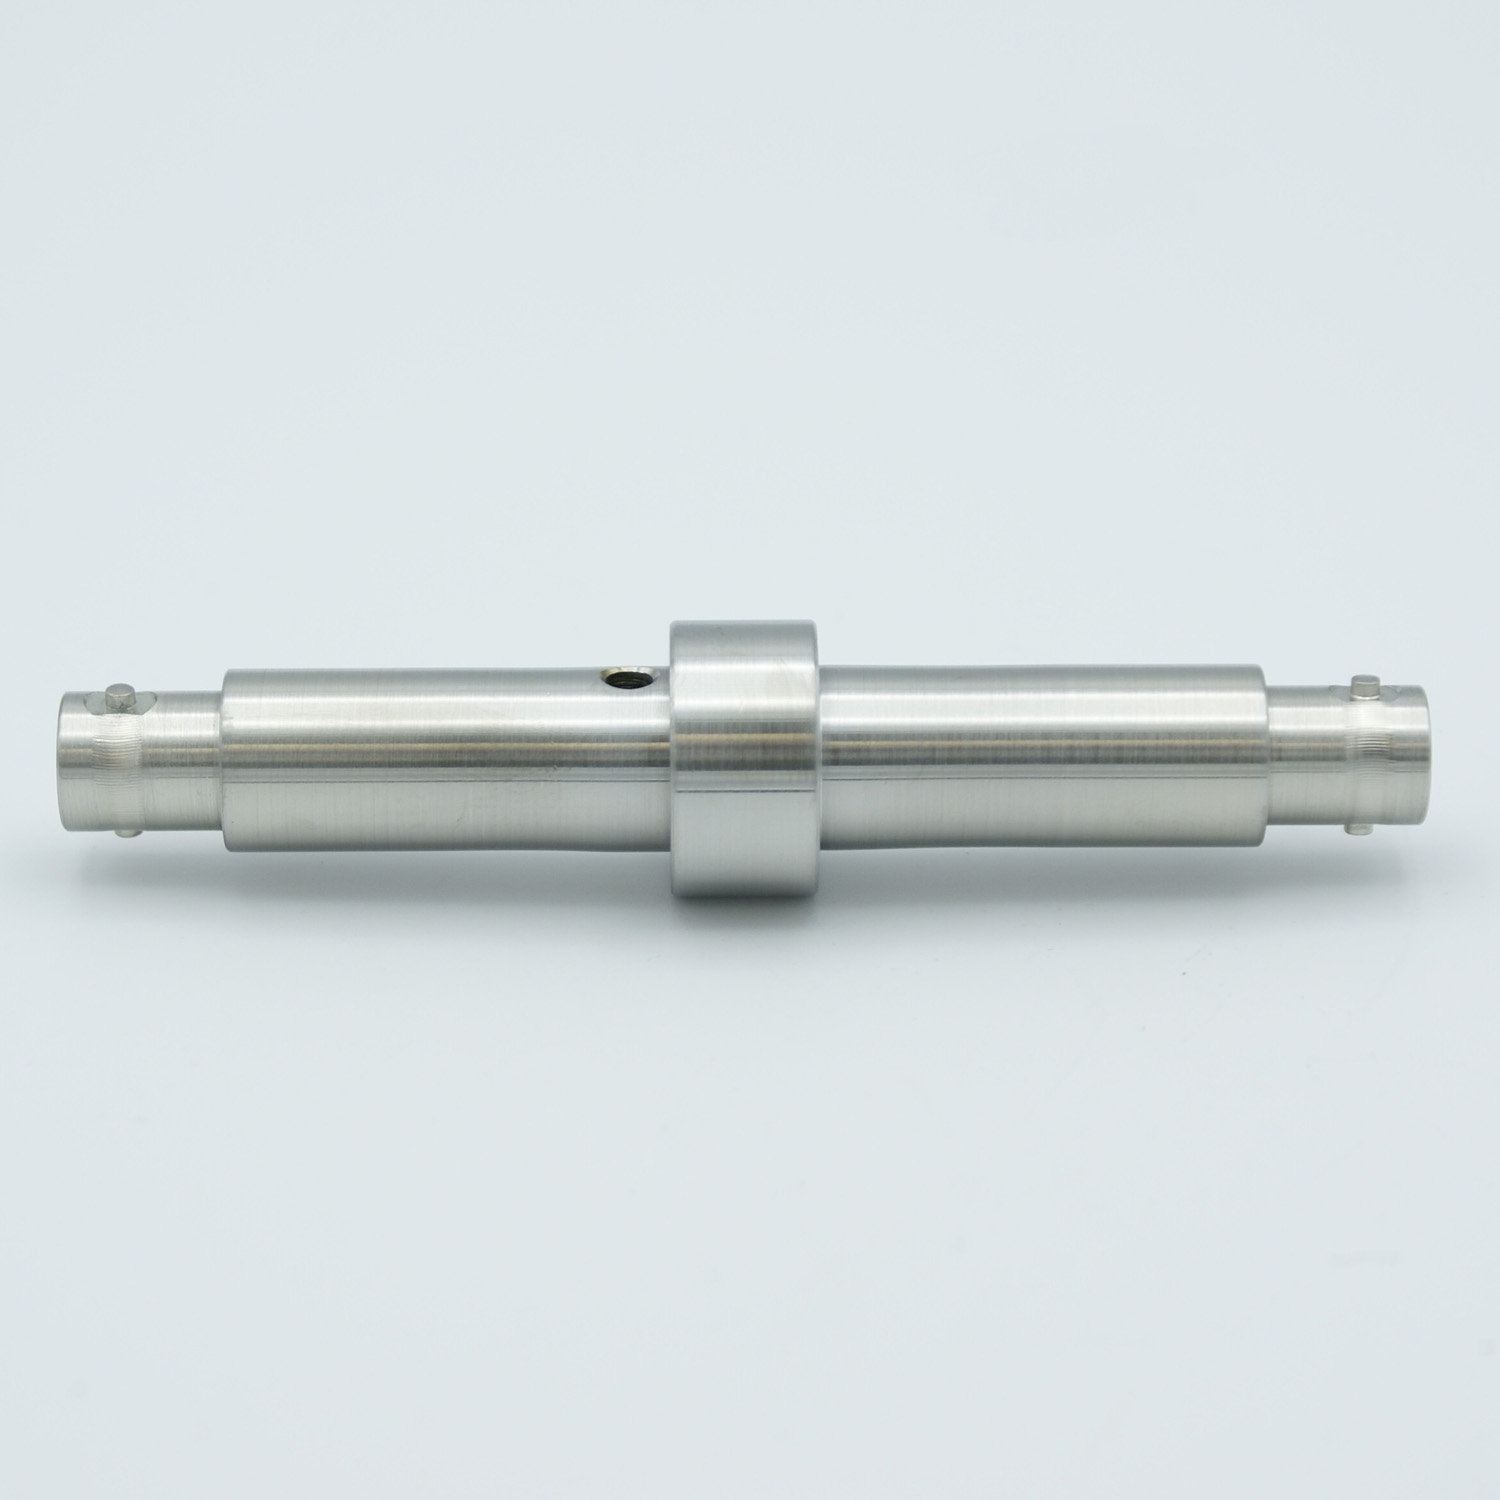 Grounded shield, double ended MHV feedthrough, weld fitting, without air side connector